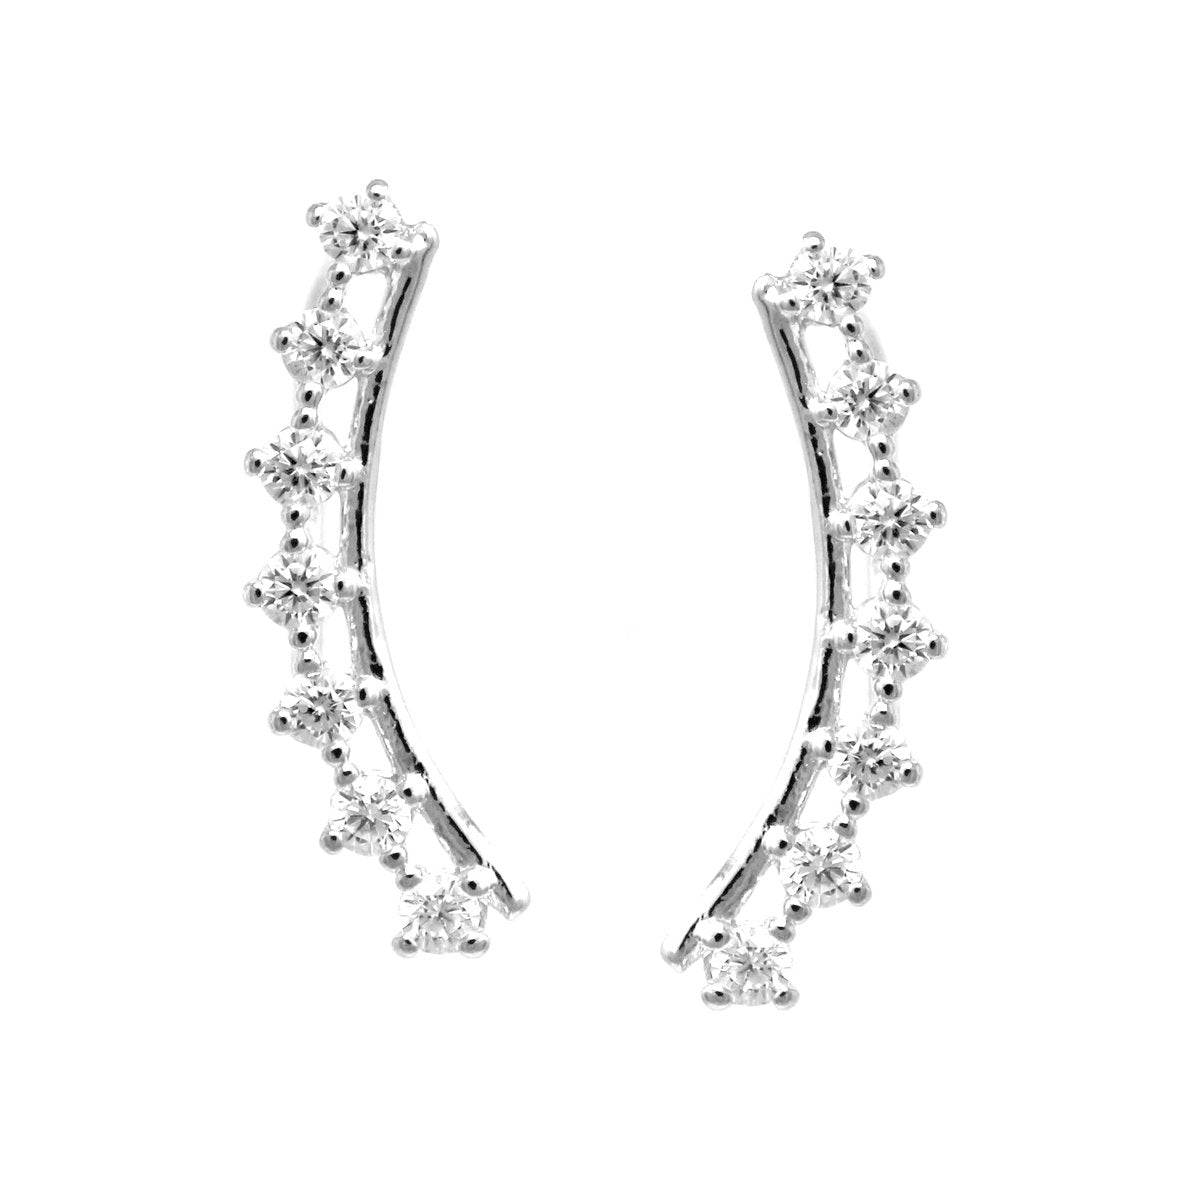 BITZ CUBIC ZIRCONIA PAVE CURVED METAL BAR EAR CRAWLERS EARRING TWO COLOR OPTIONS - GOLD OR SILVER